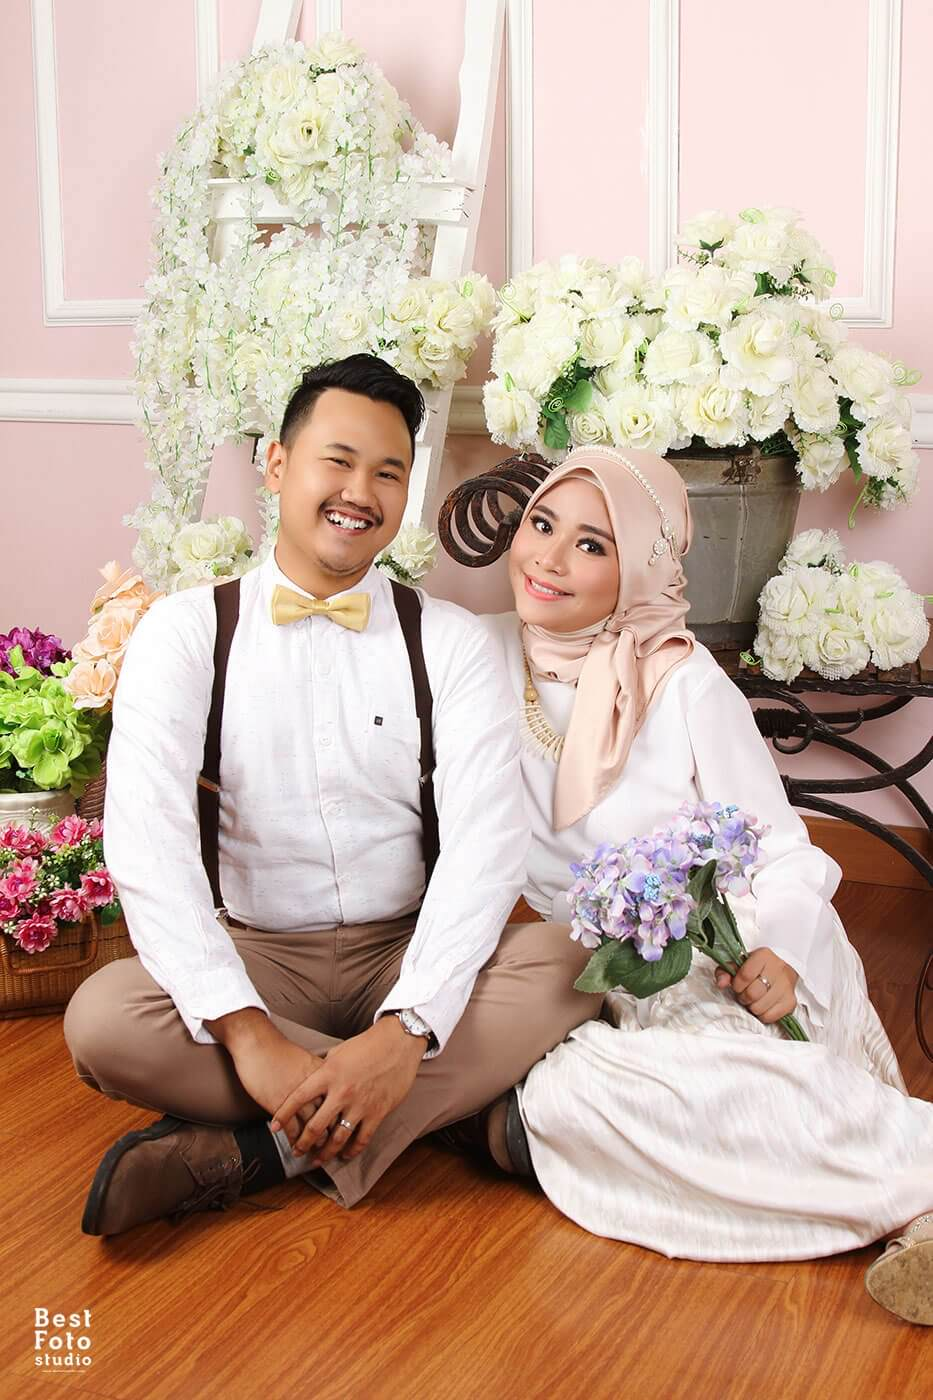 Romantis Indoor Prewedding for Puput and Fadli by BEST FOTO STUDIO 004